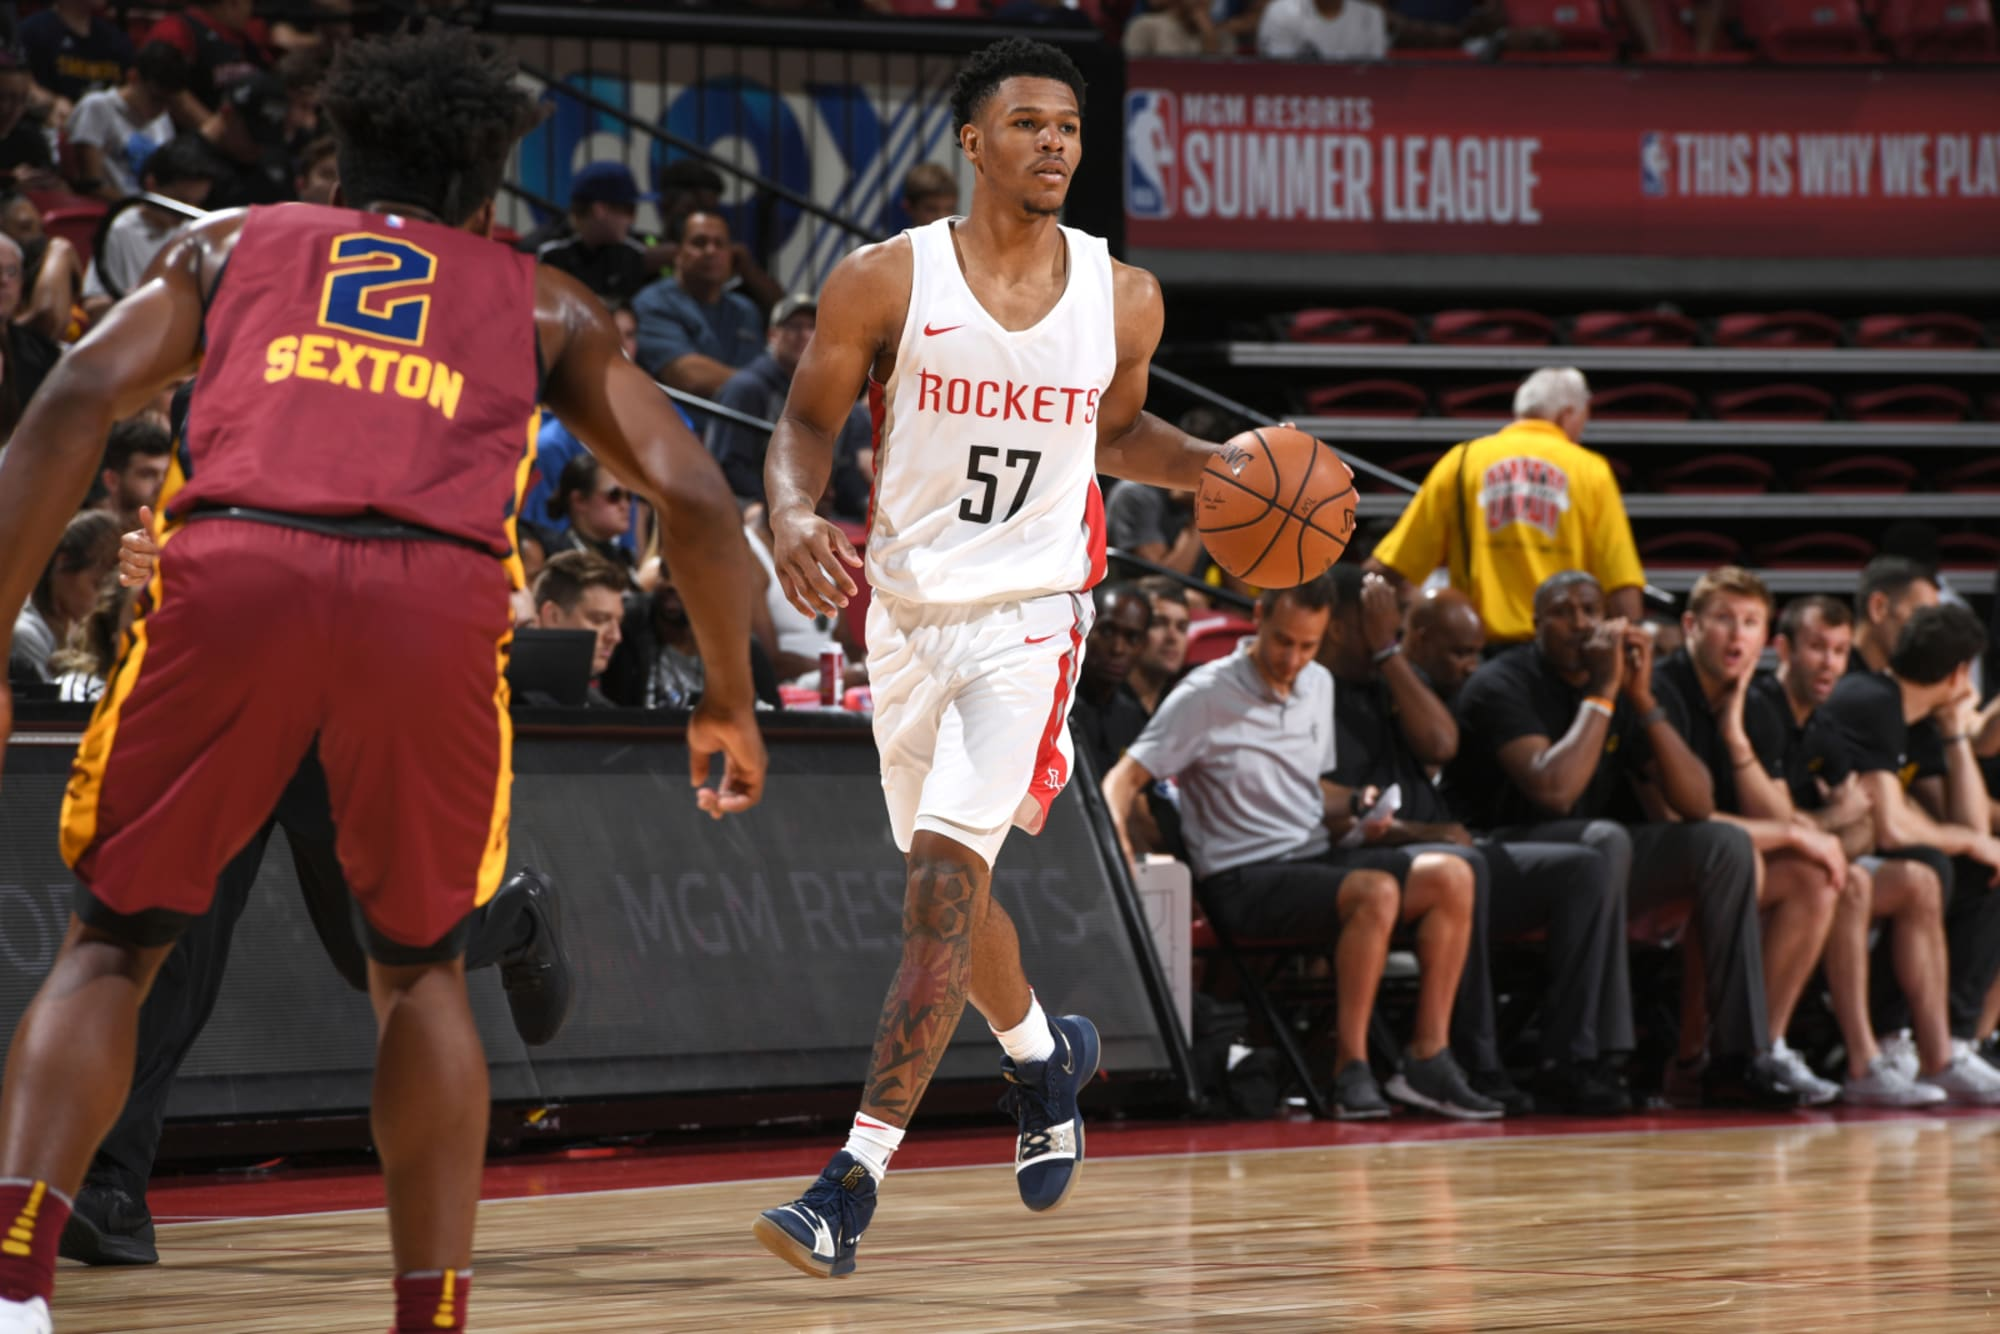 Here's a Piece on Trevon Duval and his Battle to Make an NBA Roster